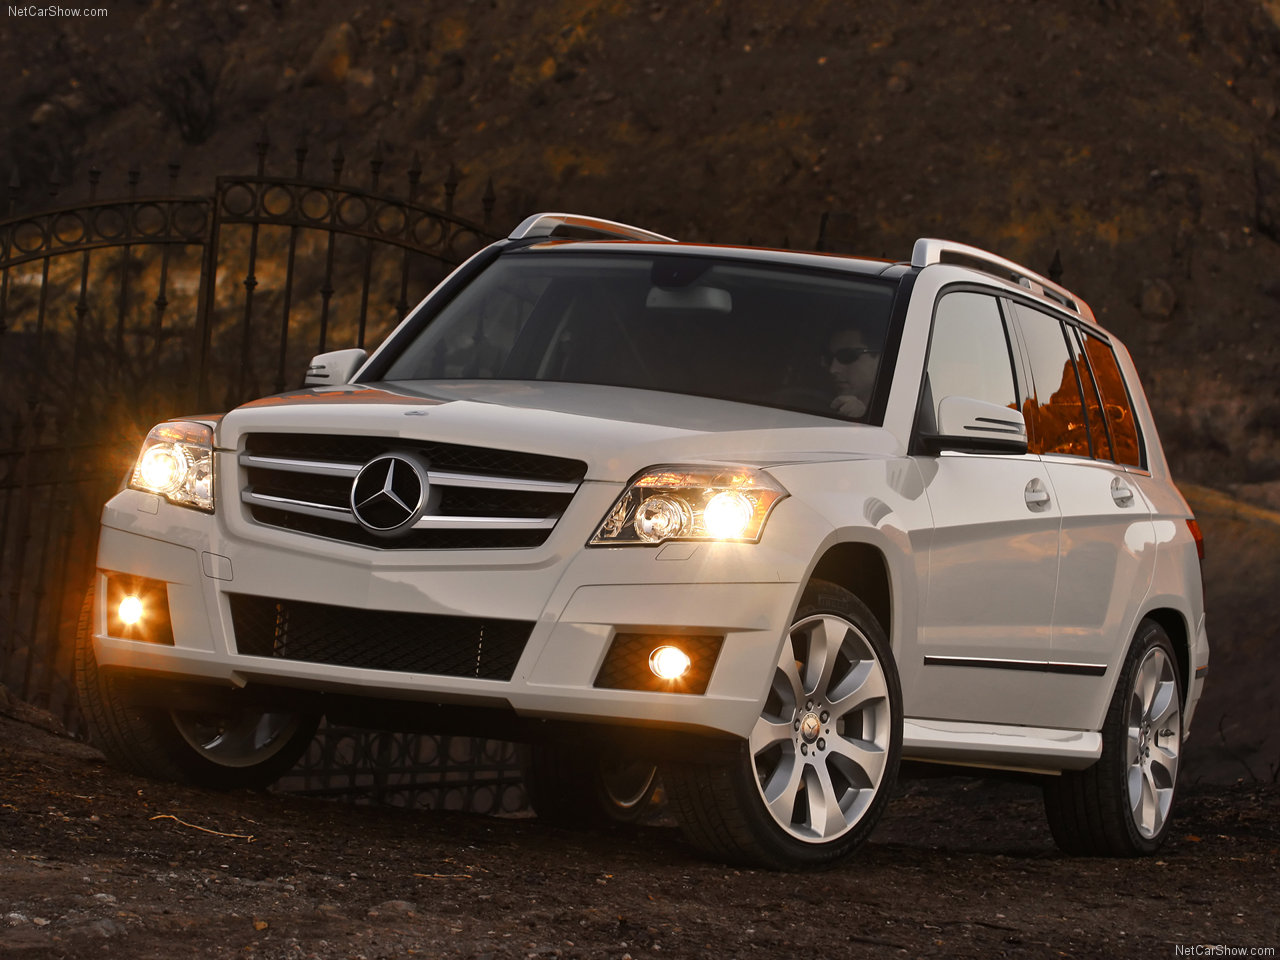 2010 mercedes benz glk 350 4matic mercedes benz cars for Mercedes benz glk 350